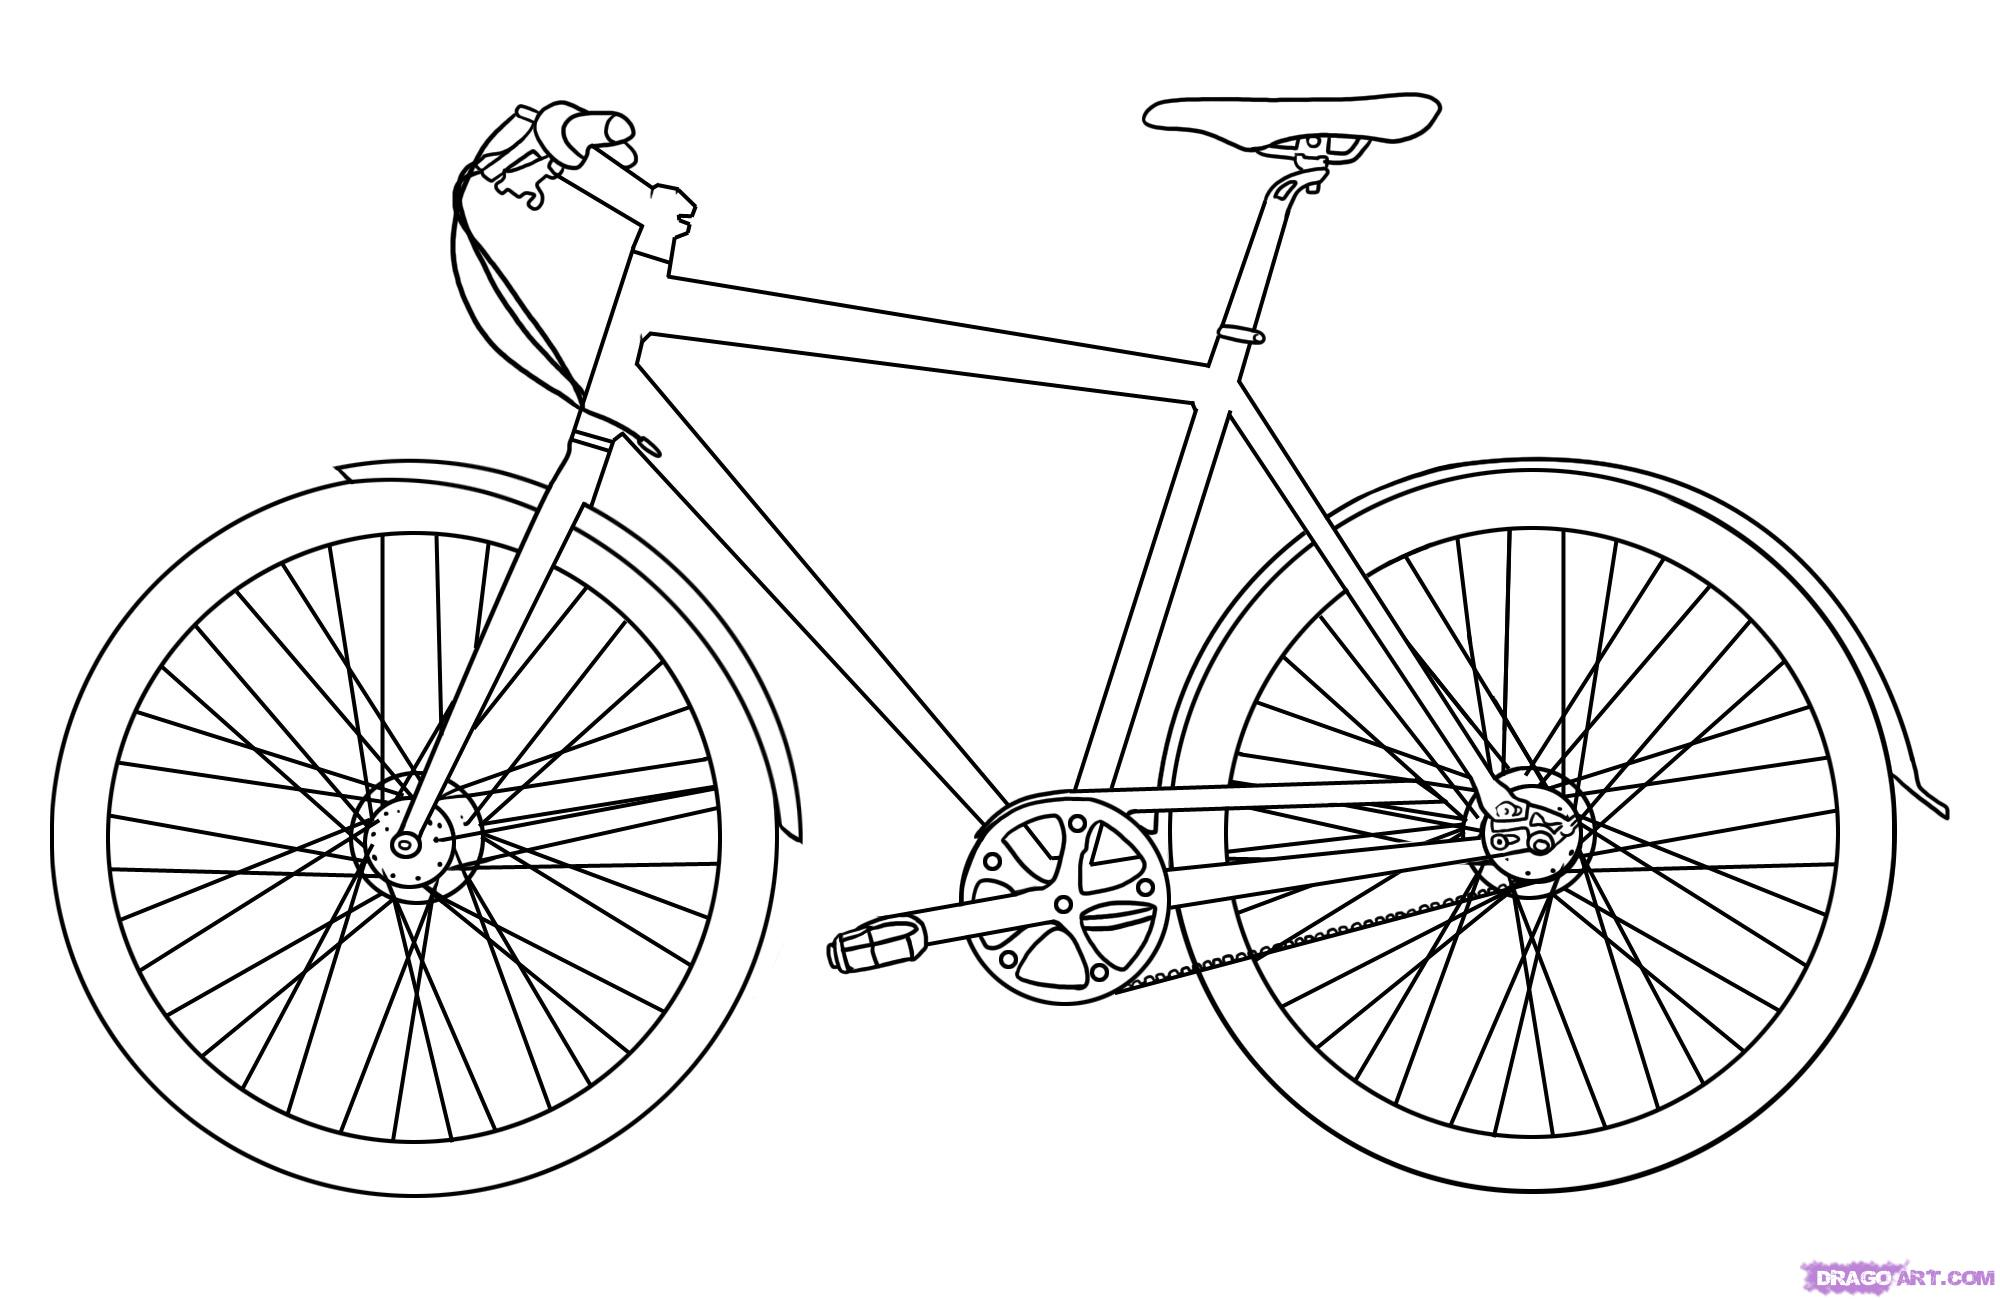 Drawn pushbike To how by Bicycle bike